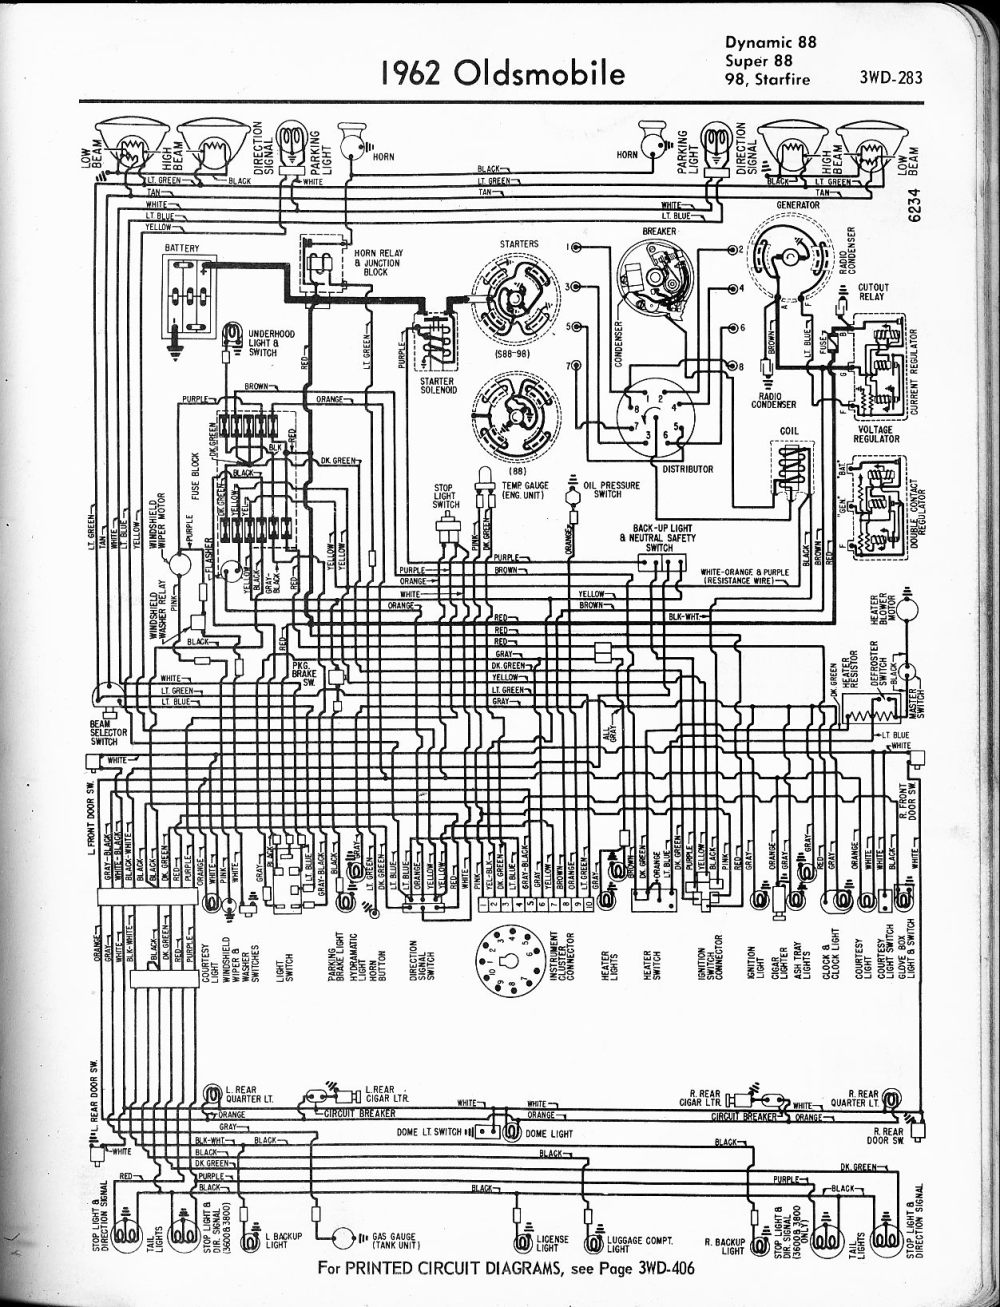 medium resolution of oldsmobile wiring diagrams the old car manual project 1999 oldsmobile 88 wiring diagram 1962 dynamic 88